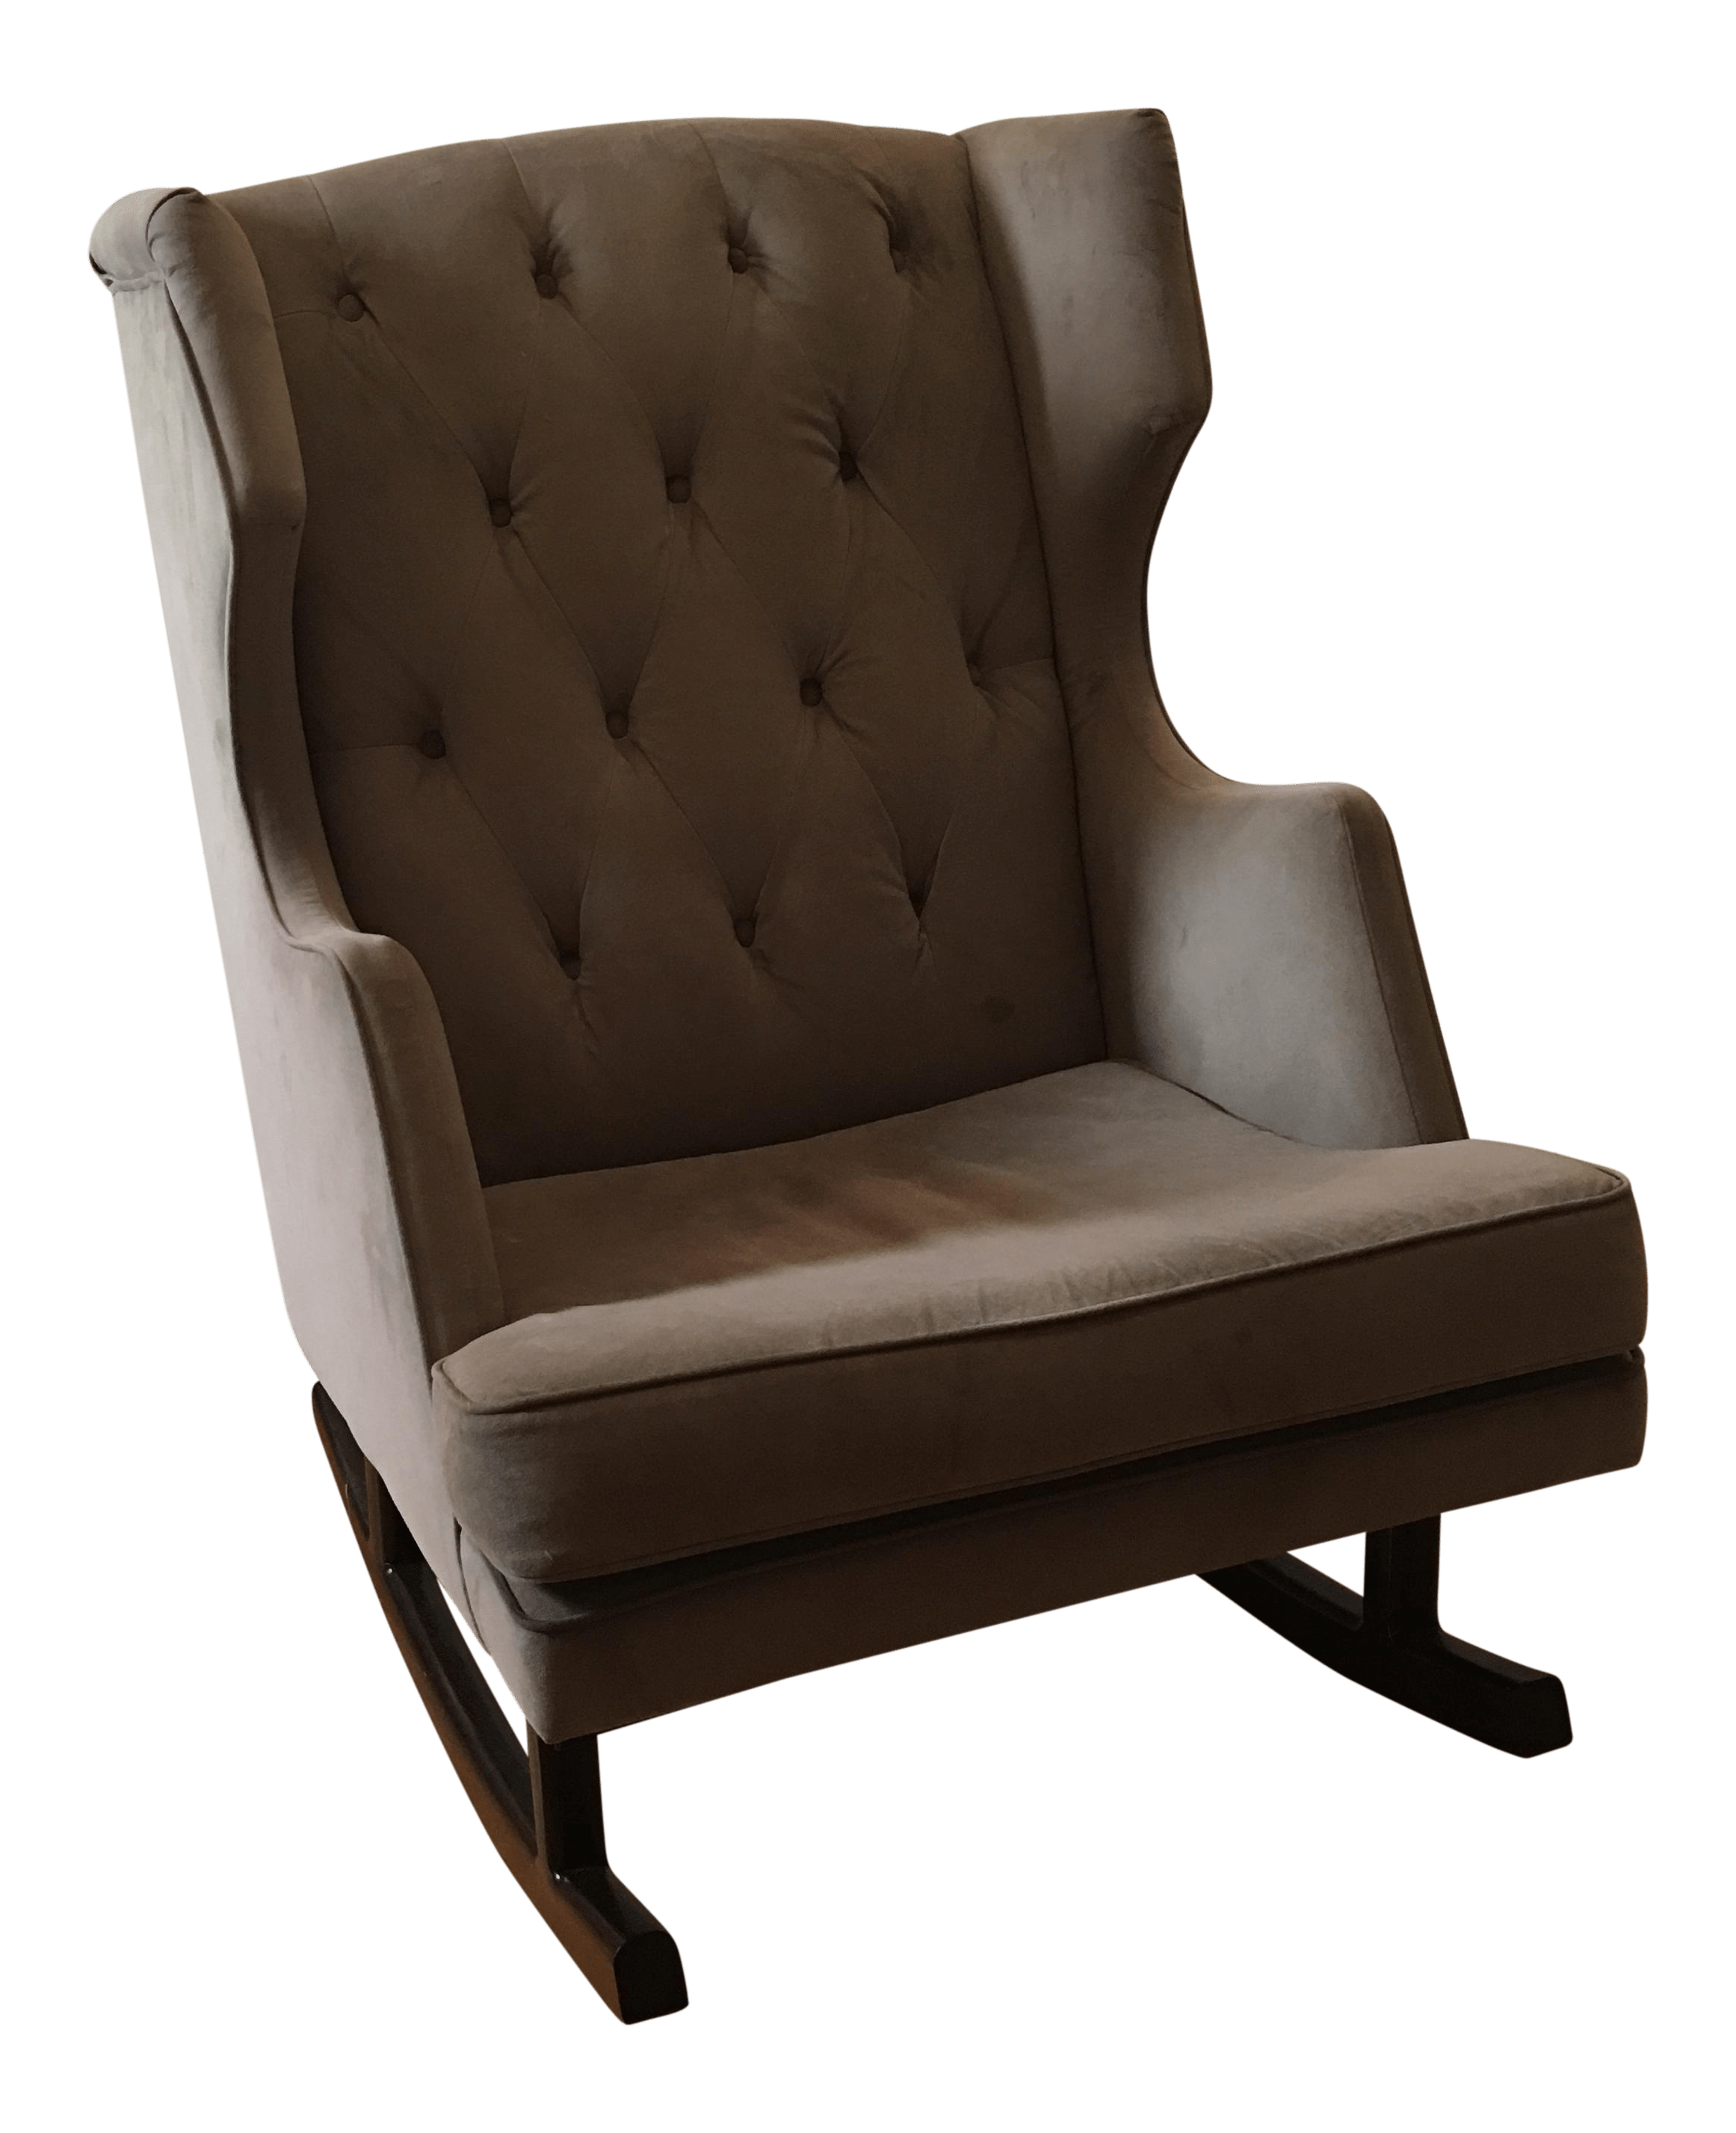 Grey Rocking Chair Gray Oversized Rocking Chair Chairish